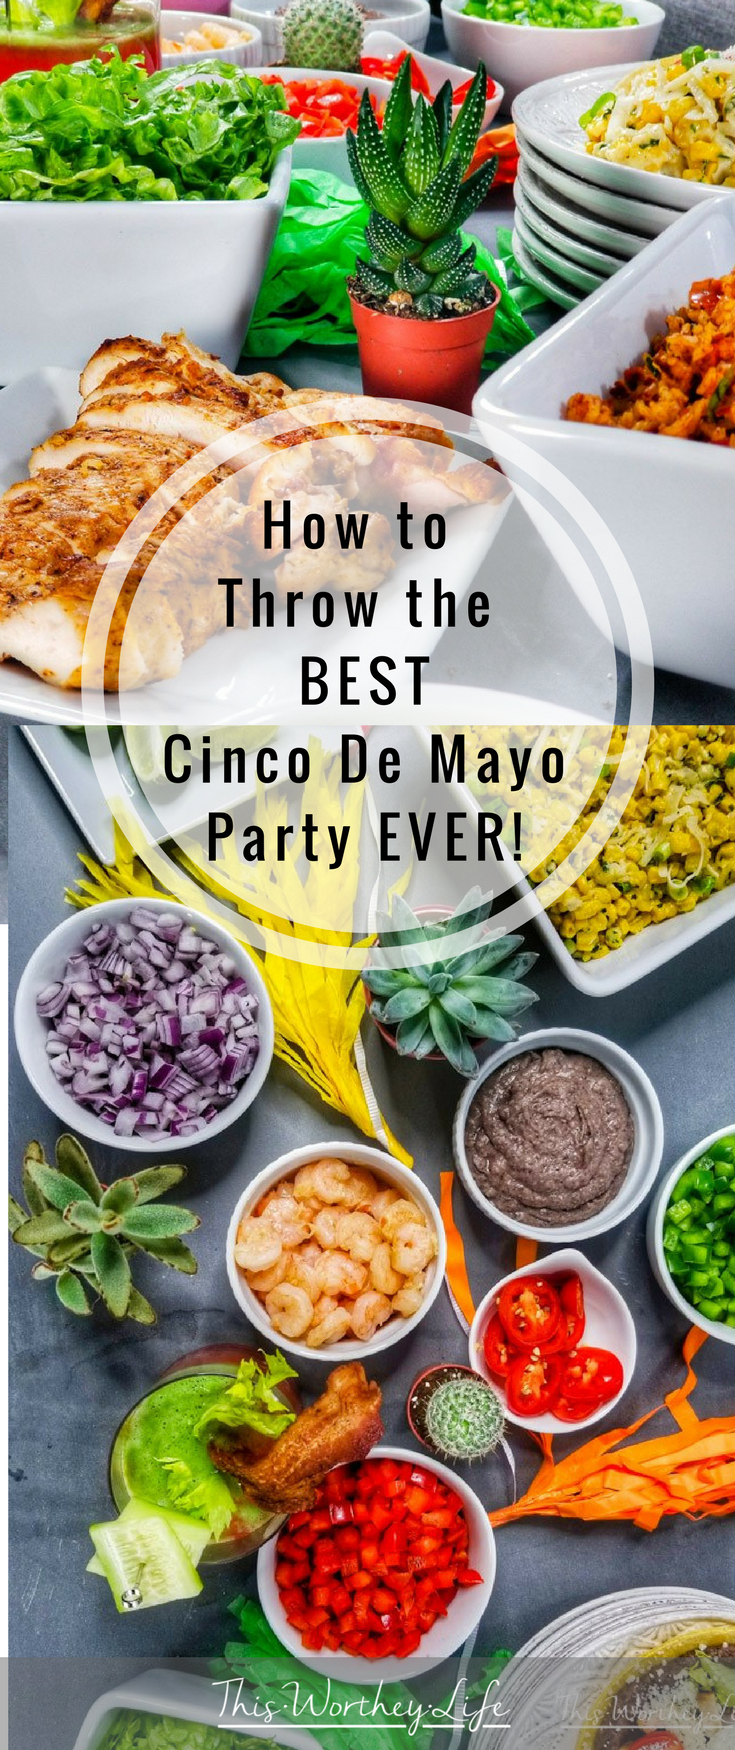 Get ready to celebrate Cinco de Mayo with some of our food ideas. We're sharing tips on how to throw the best Cinco de Mayo party ever, along with three Mexican food ideas and a Mexican cocktail with bourbon.